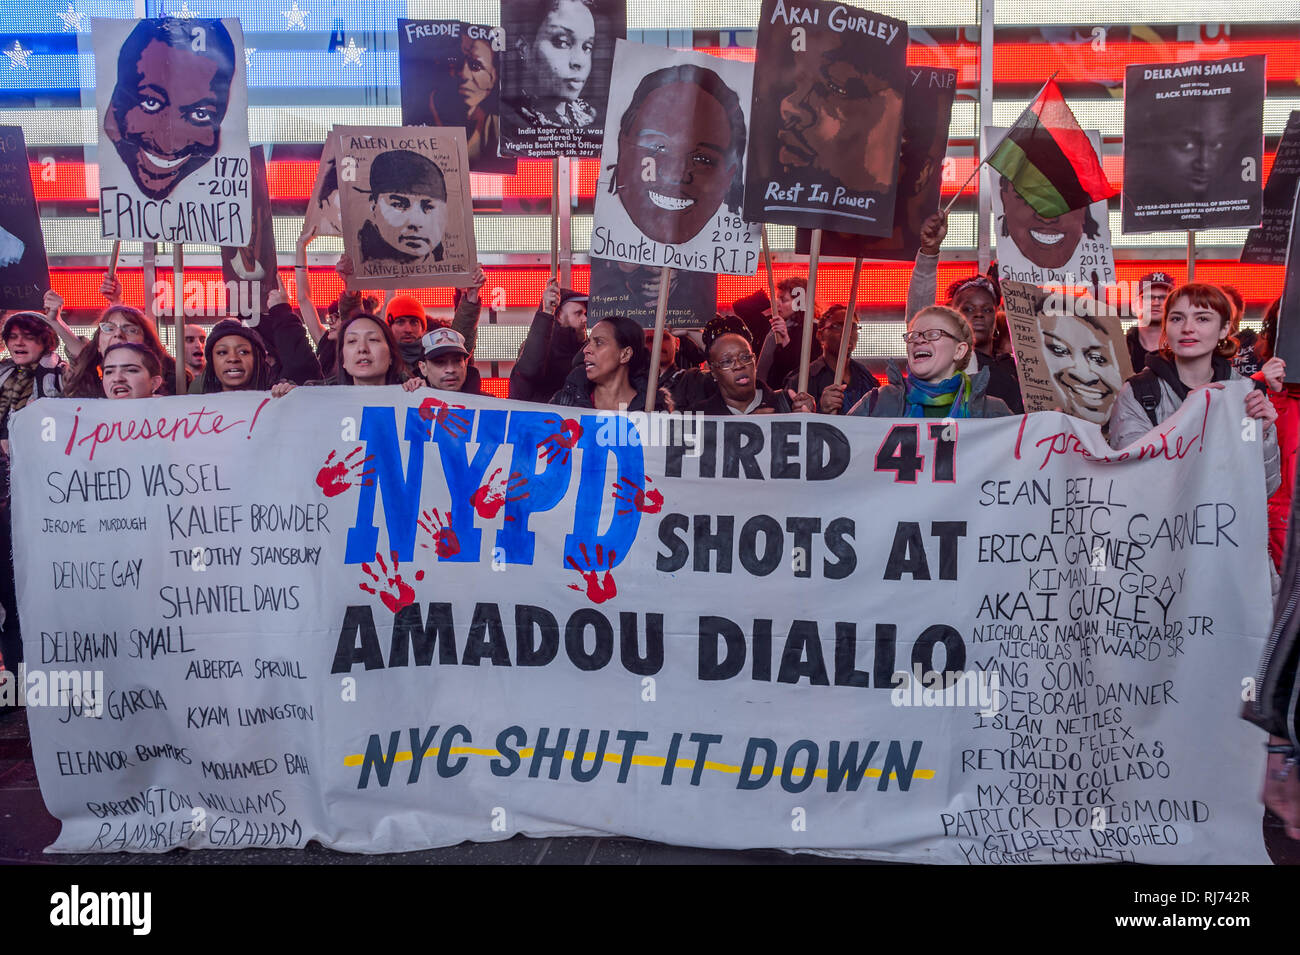 Members of the activist group NYC Shut It Down gathered at Grand Central and took the streets marching to Times Square on February 4, 2019, to remember the 20 year anniversary of the murder of Amadou Diallo in the Bronx, shot 41 times by the NYPD. During the march, the group also displayed portraits of other victims of police brutality. (Photo by Erik McGregor / Pacific Press) - Stock Image